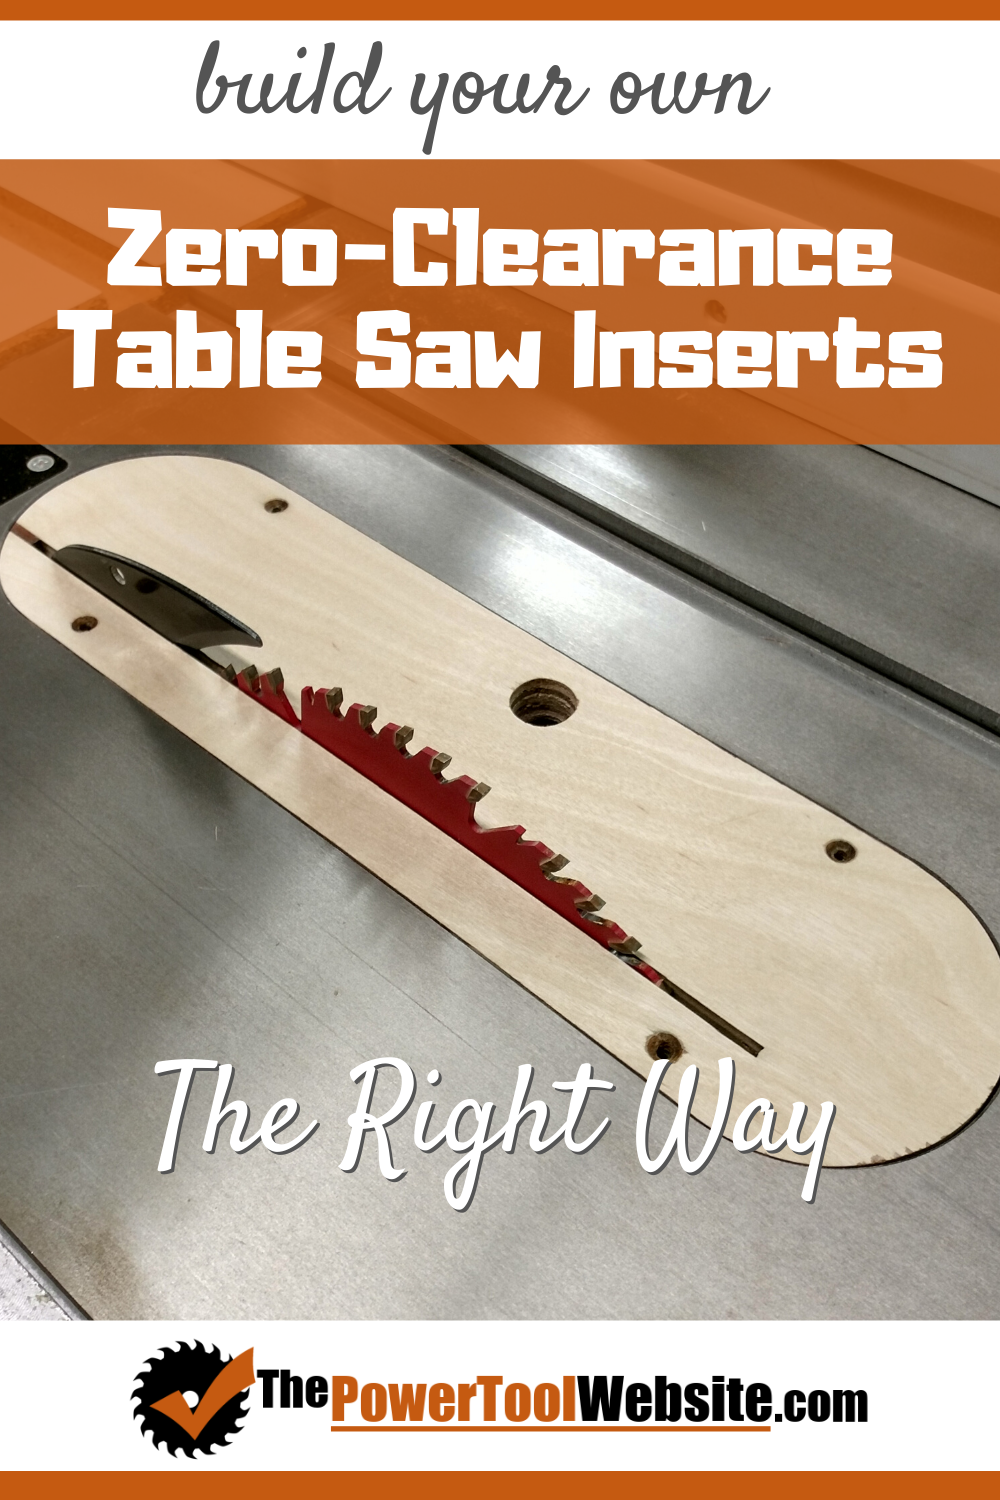 Zero Clearance Table Saw Insert – How To Make One The Right Way